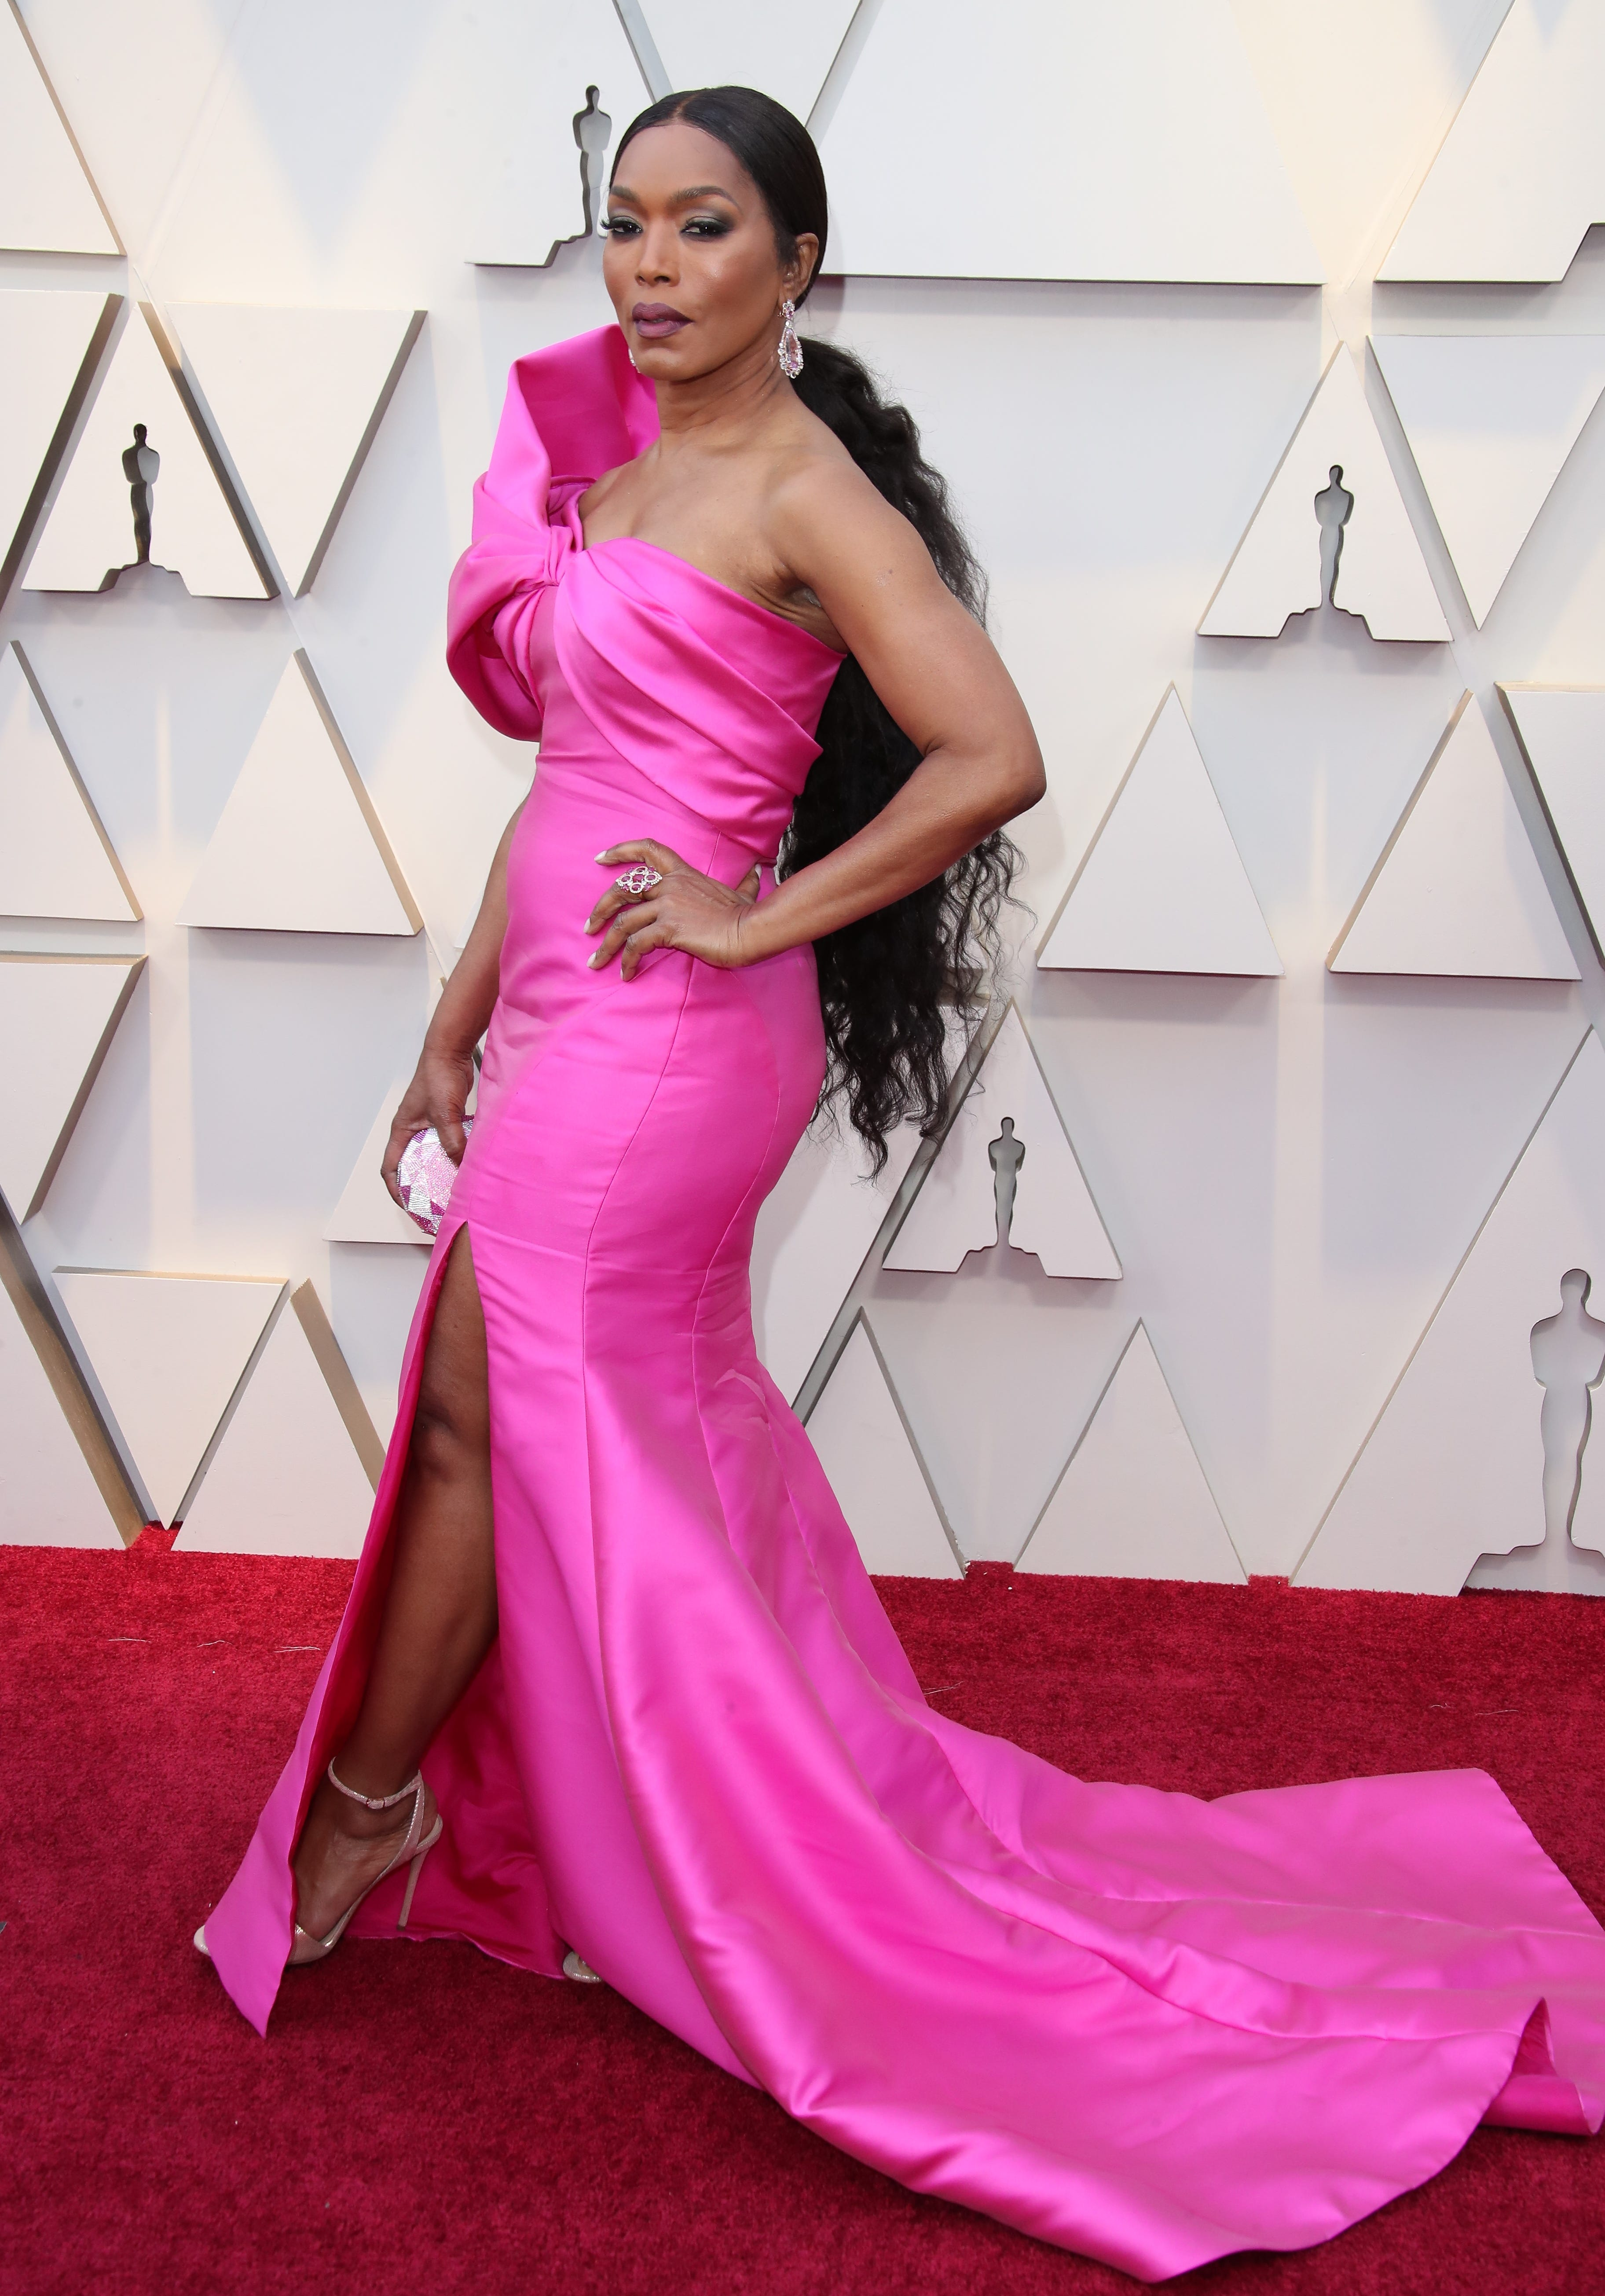 February 24, 2019; Los Angeles, CA, USA; Angela Bassett arrives at the 91st Academy Awards at the Dolby Theatre. Mandatory Credit: Dan MacMedan-USA TODAY NETWORK (Via OlyDrop)